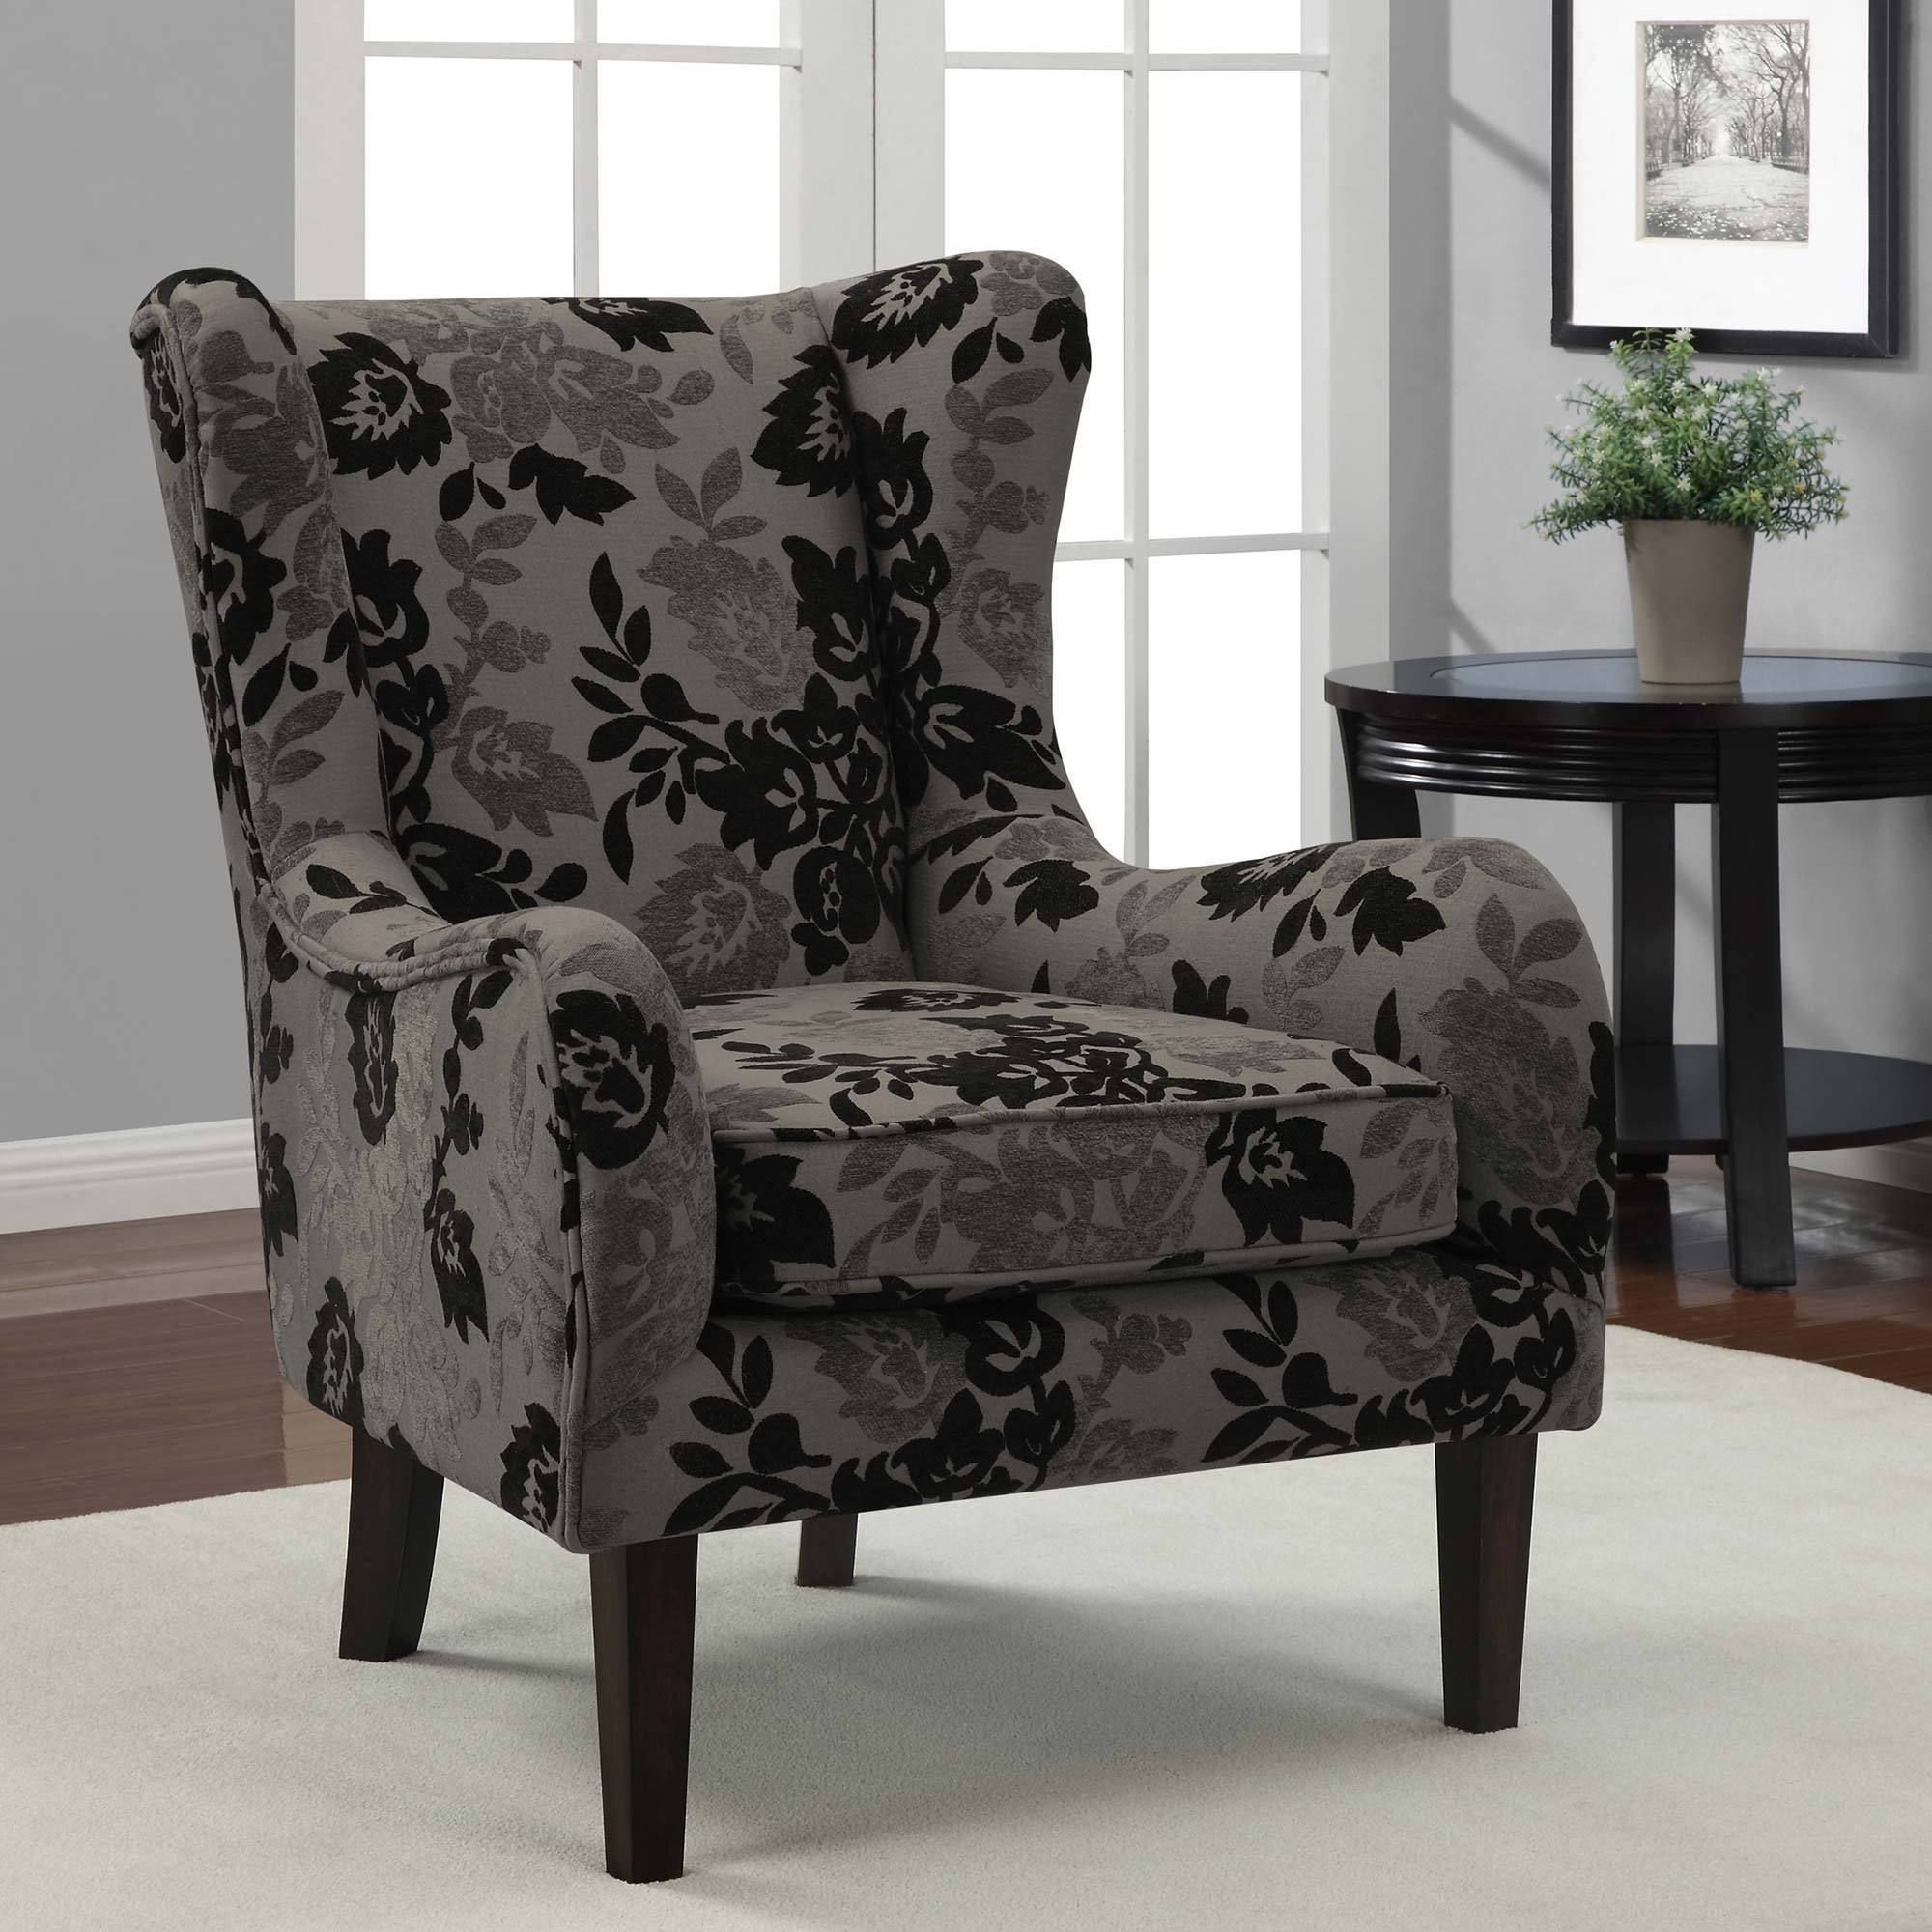 This Chair Features A Classic Wing Chair Design With A Graceful Back And  Arms That Create